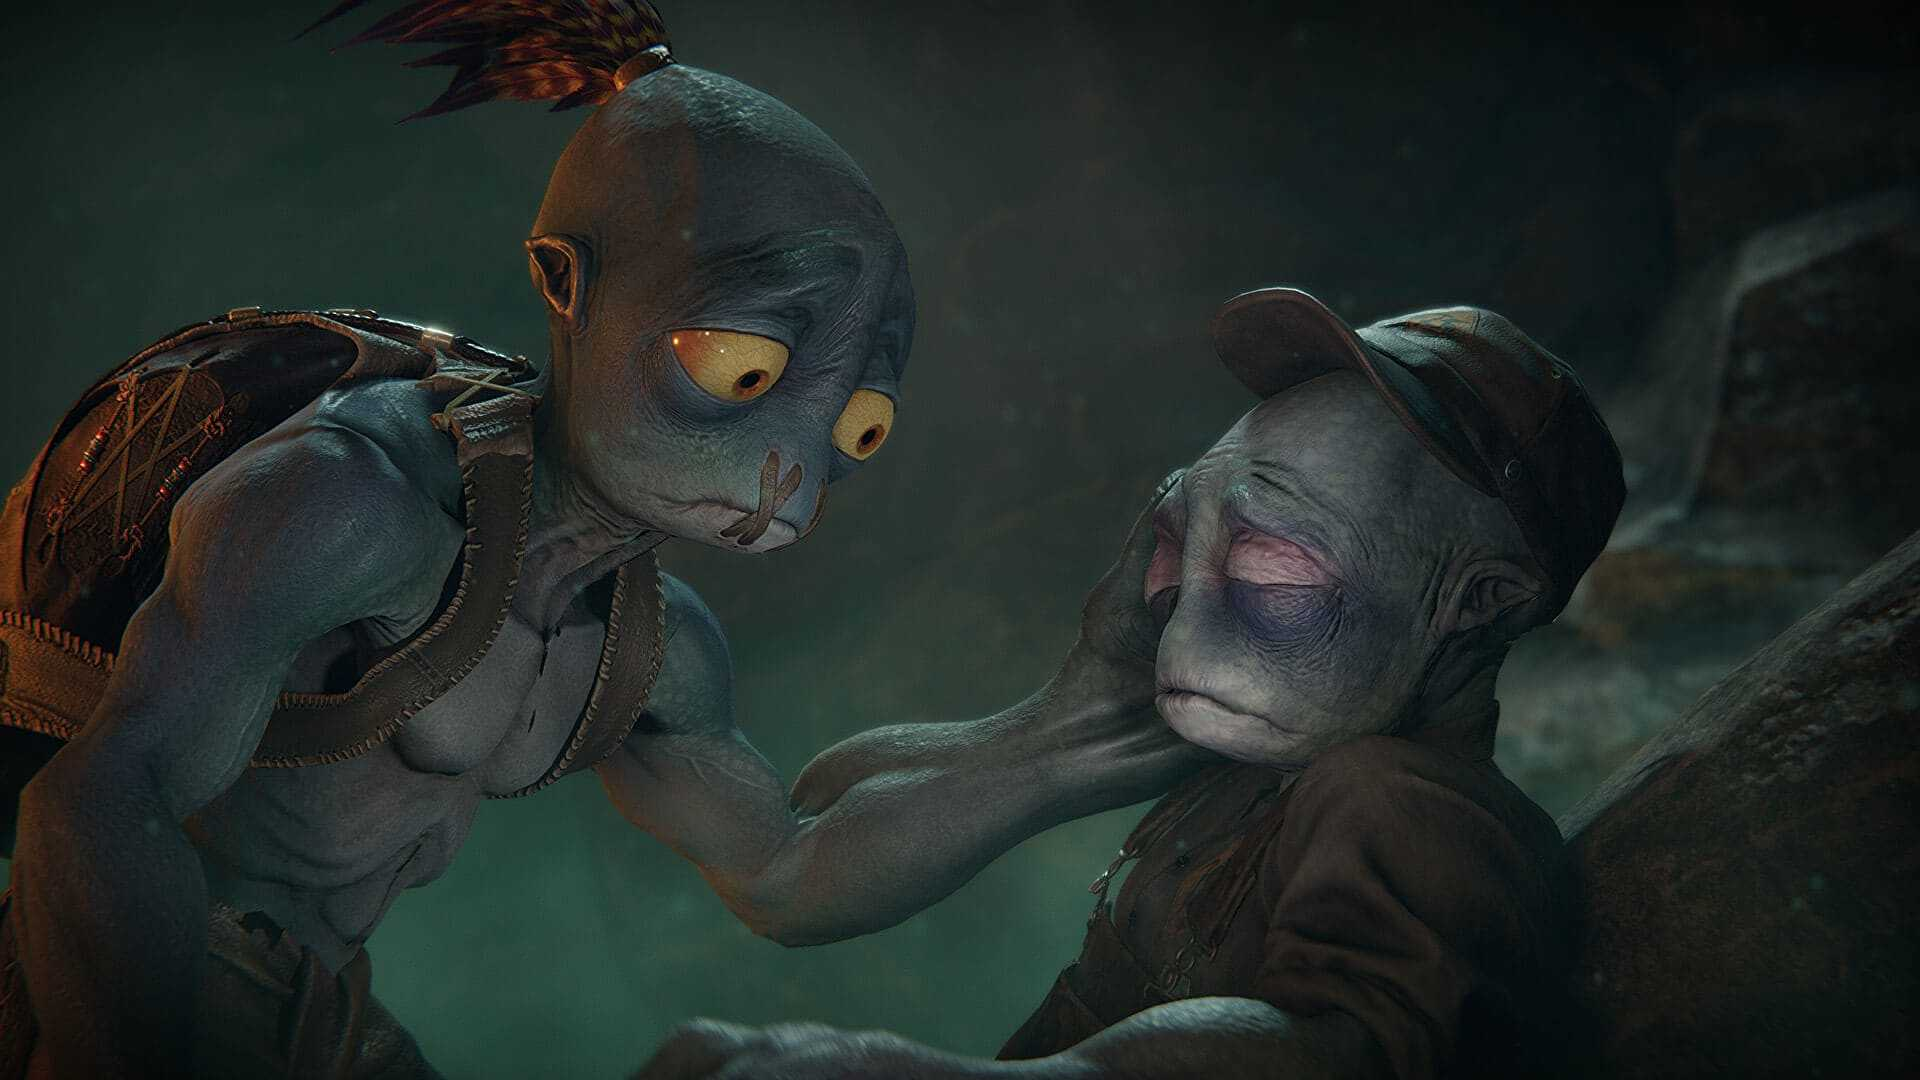 Oddworld: Soulstorm is out now